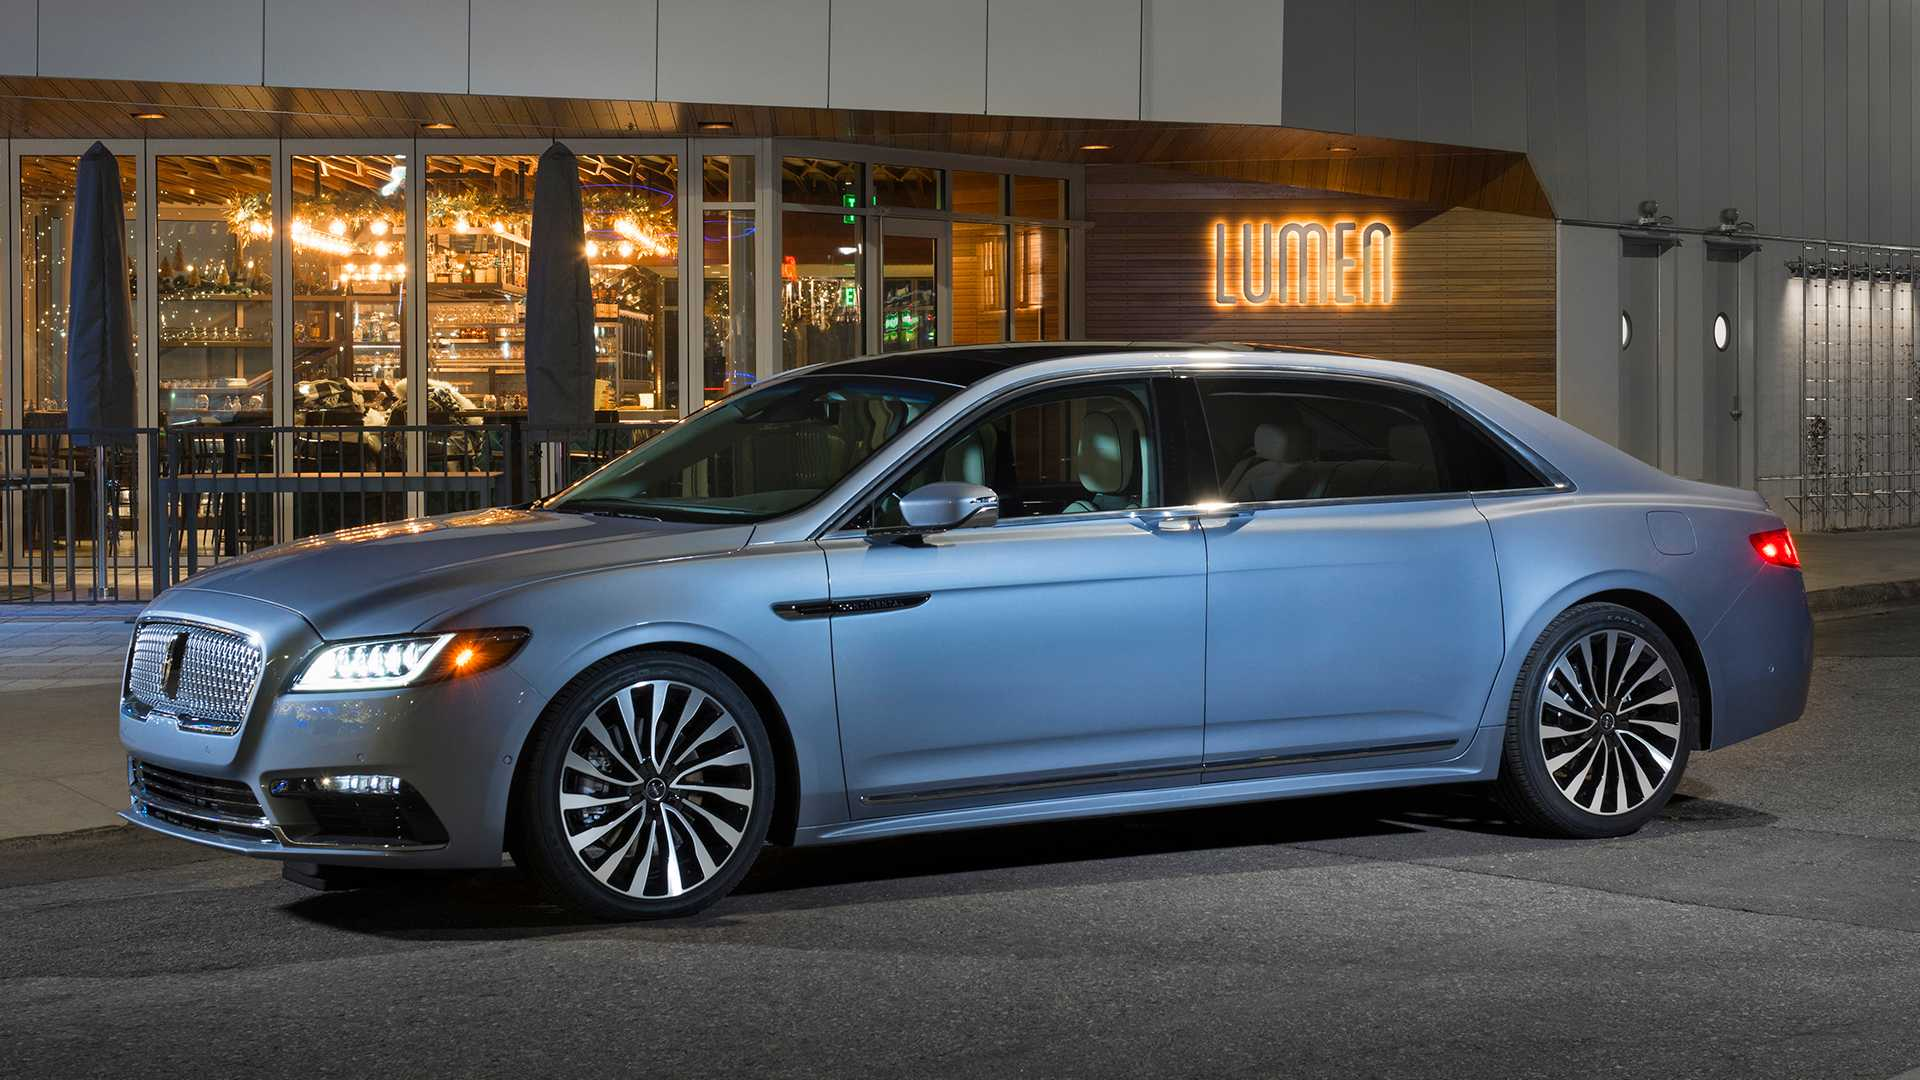 2019 Lincoln Continental Coach Door Edition Oozes Gangster Appeal